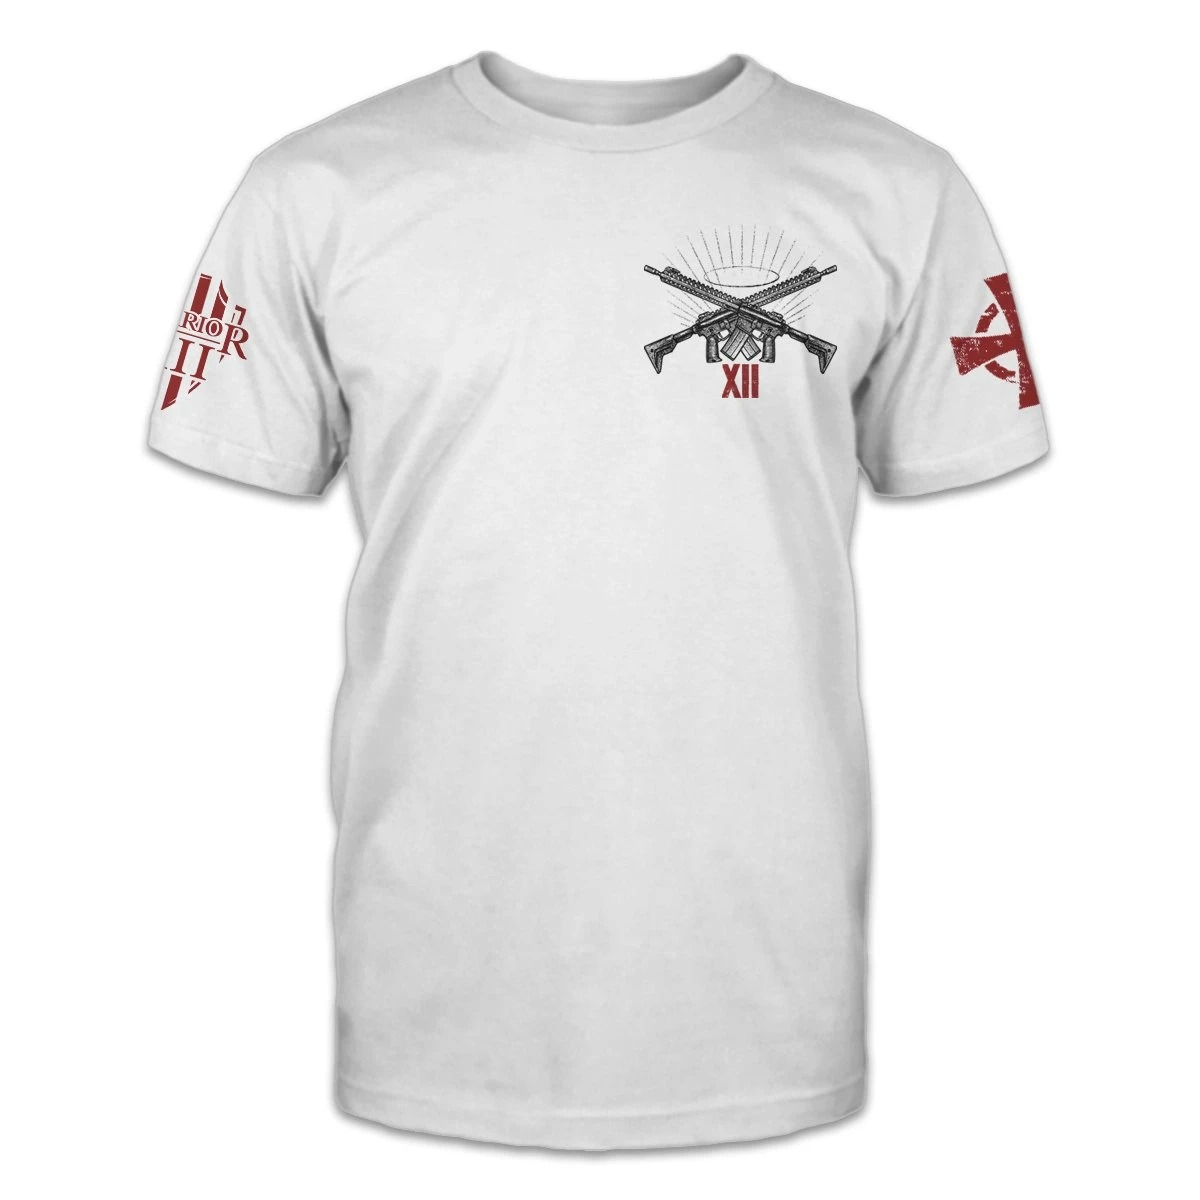 God gave his archangels weapons because wven the almighty knew T shirt3